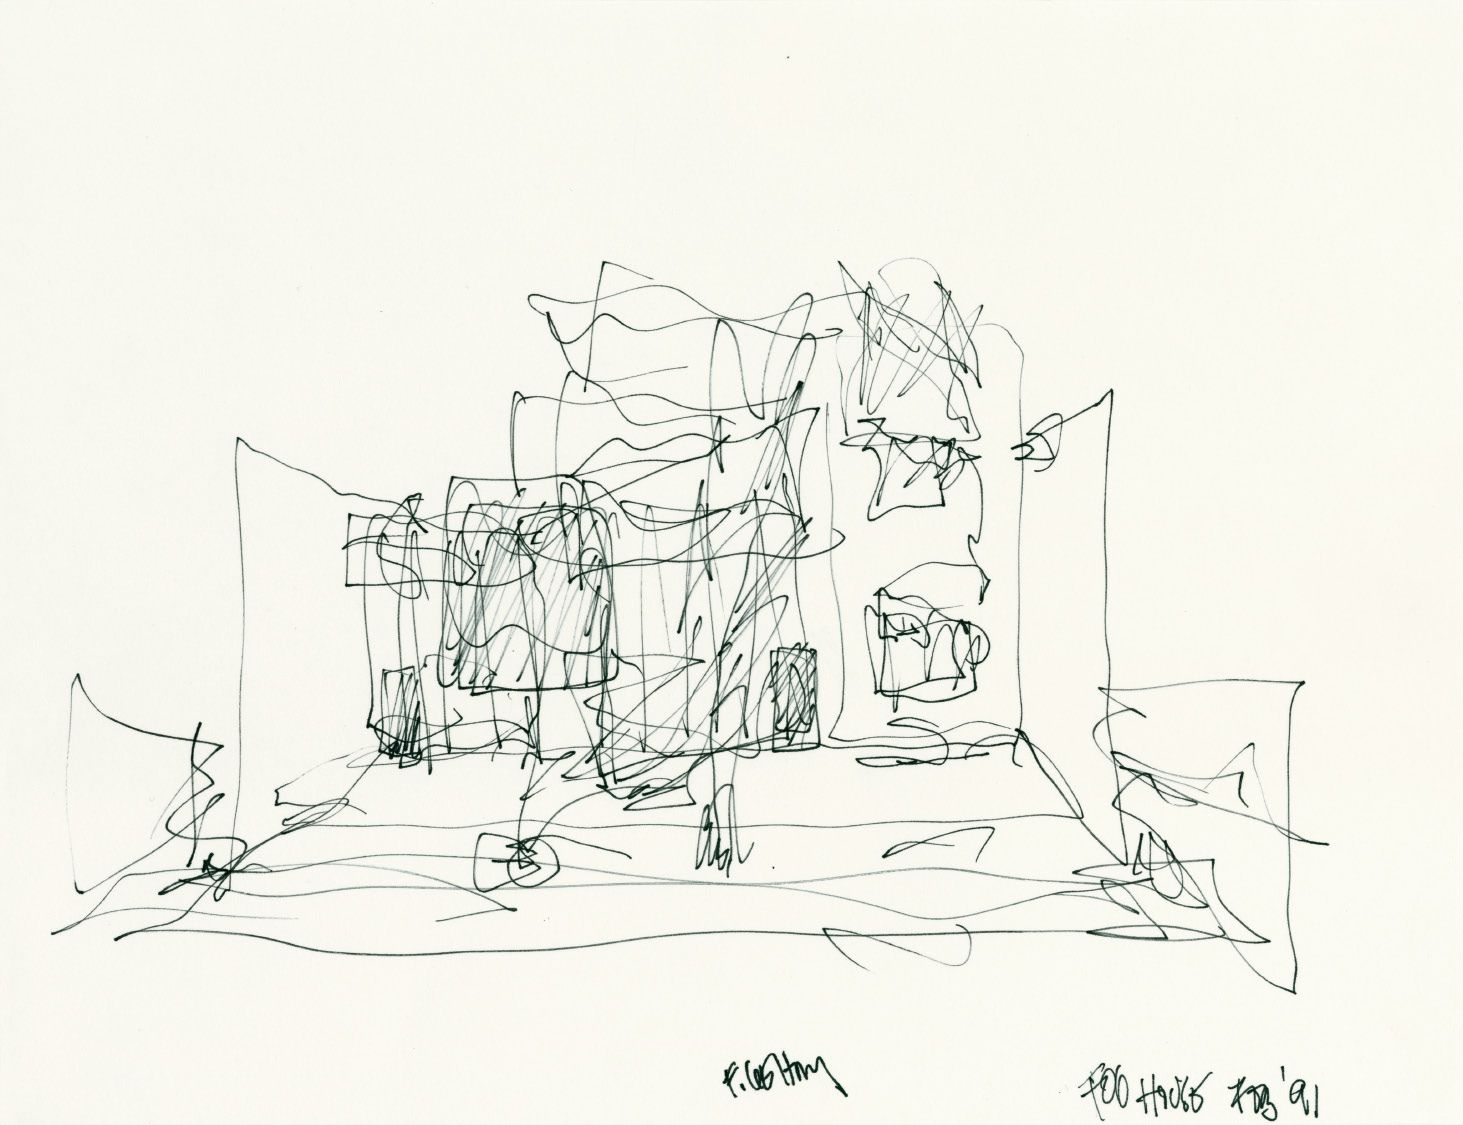 Frank Gehry's sketch of Gehry Residence, Santa Monica